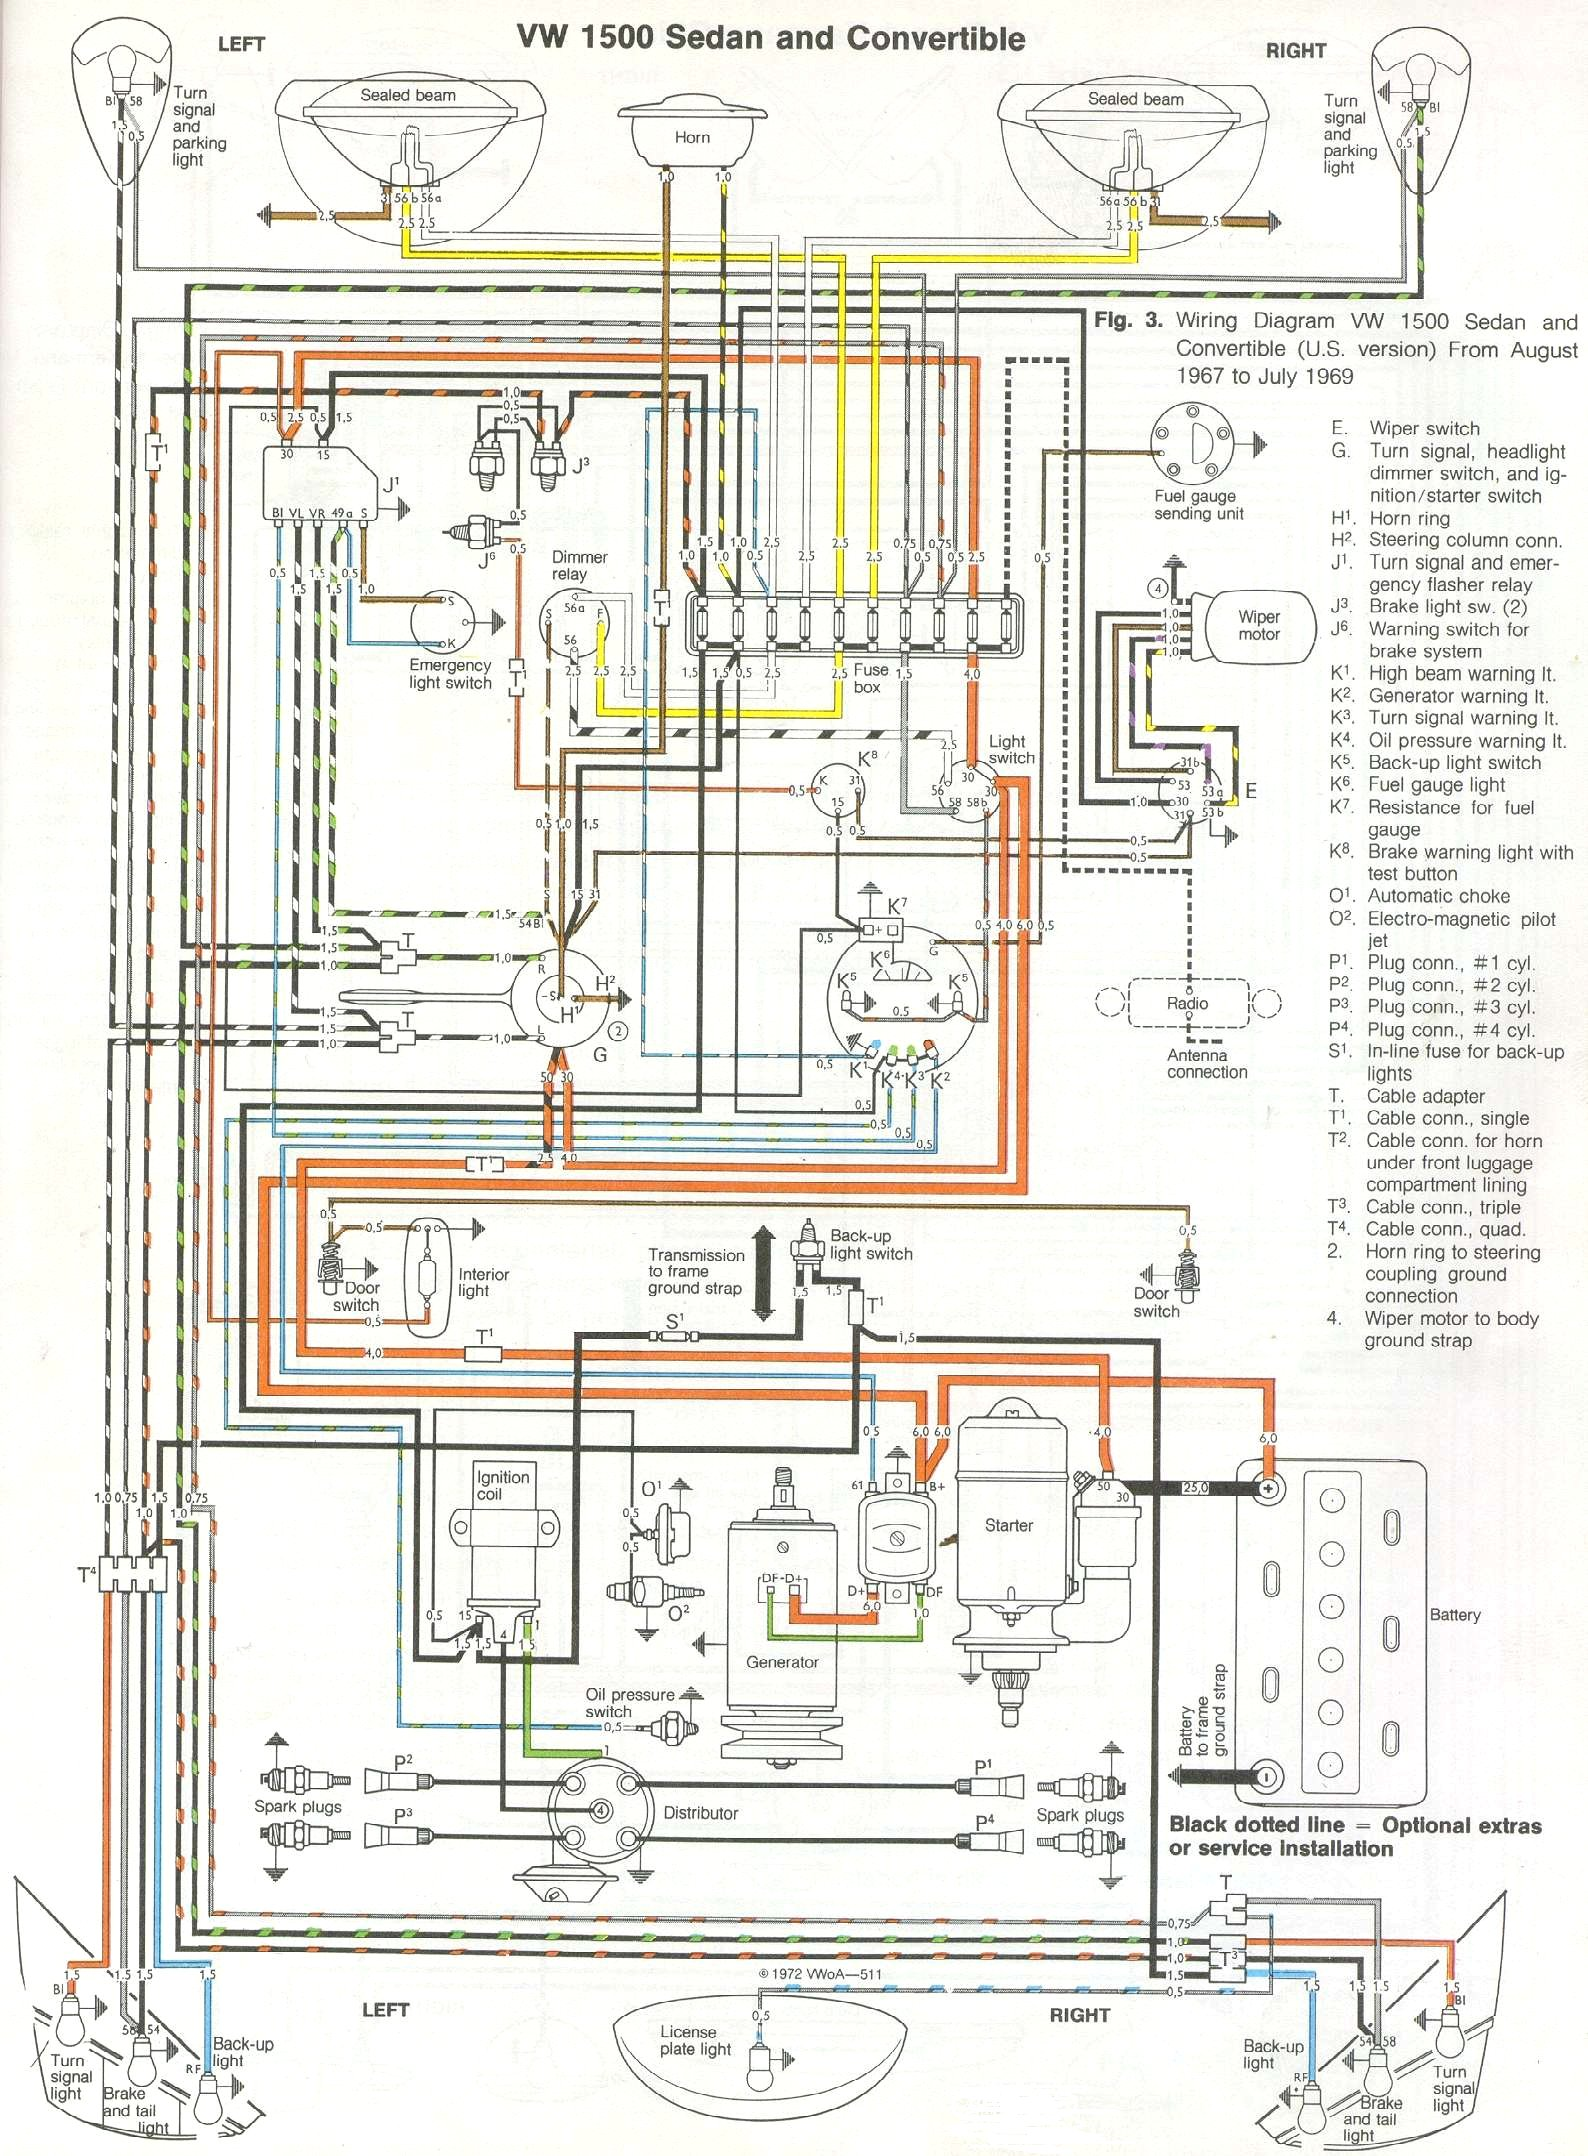 1969 71 beetle wiring diagram thegoldenbug com 2012 vw passat fuse diagram  1976 vw fuse diagram